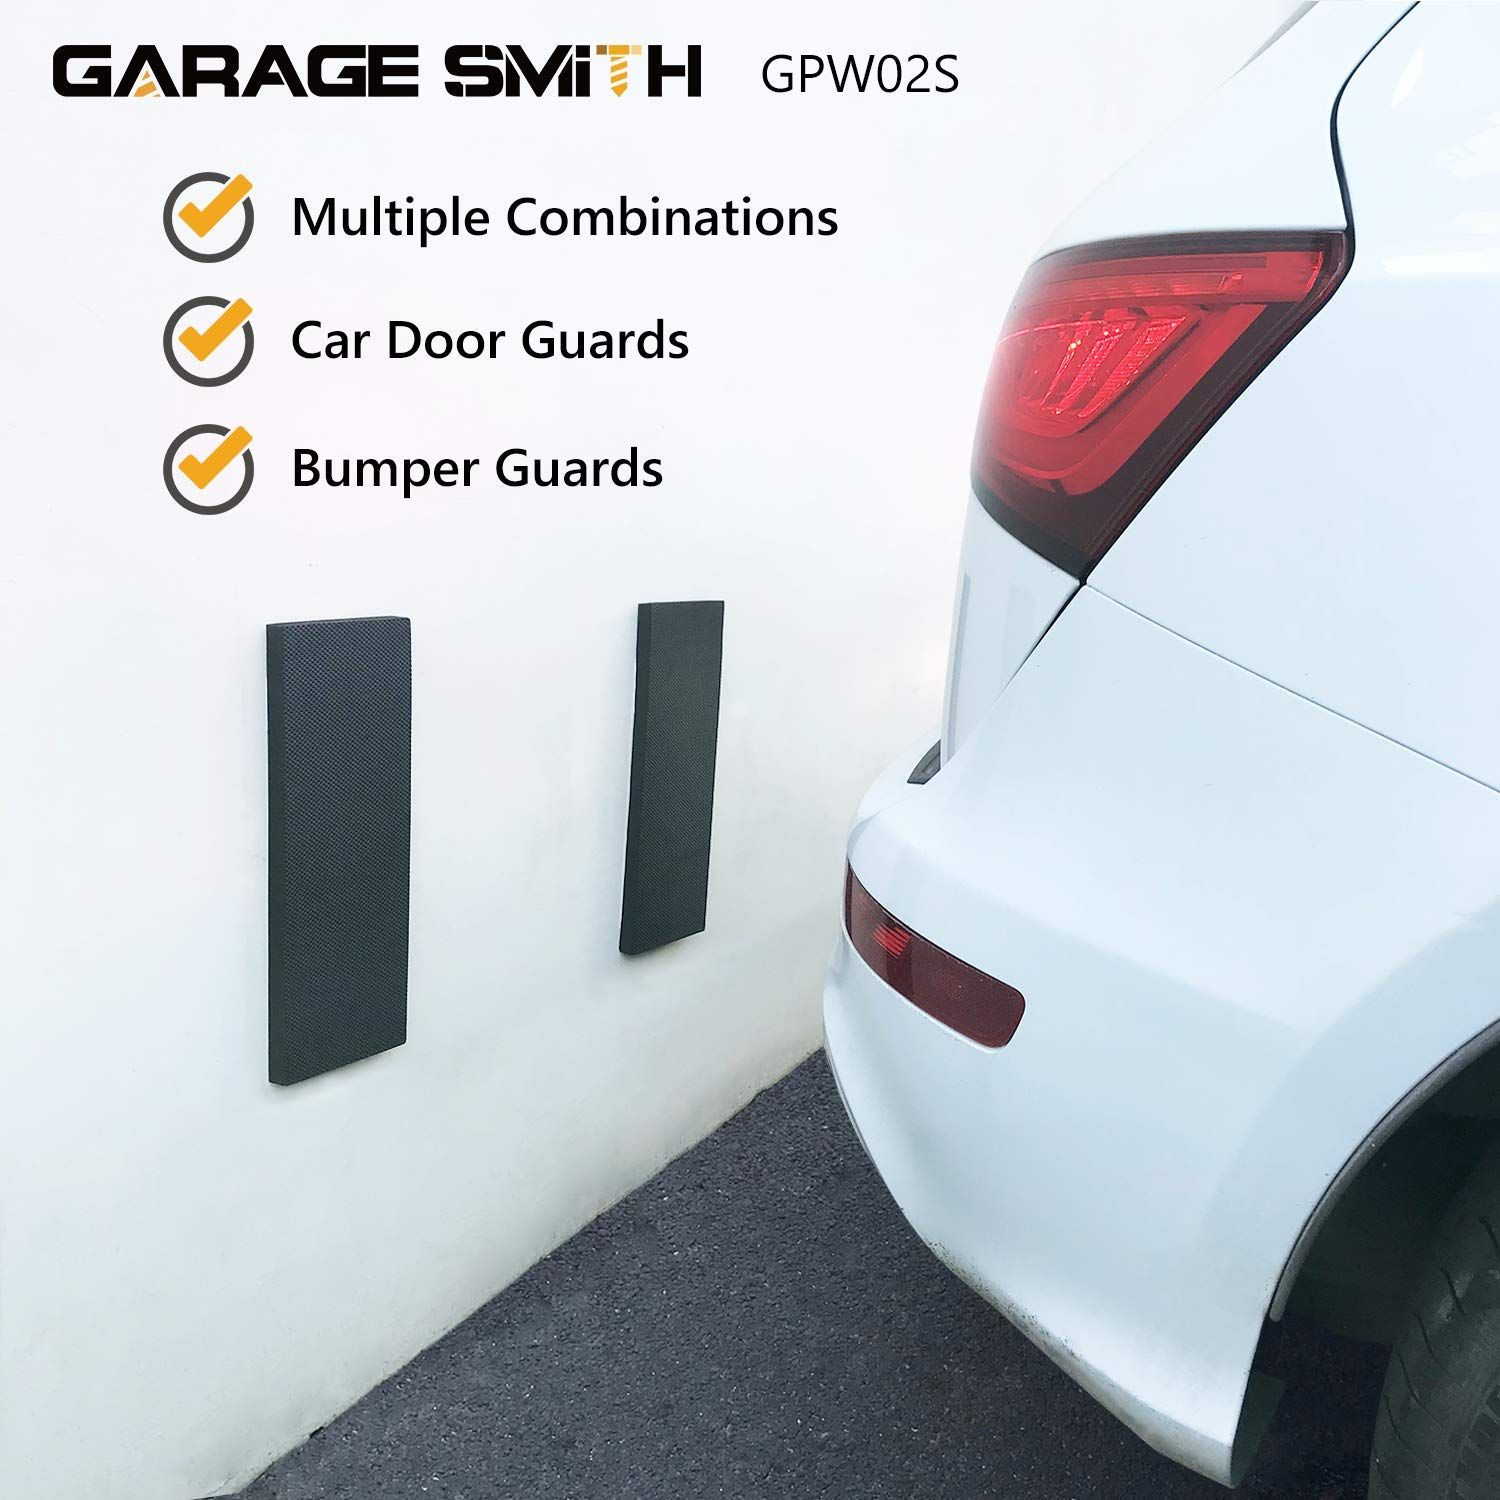 Ampulla Garage Smith Gwp02s Garage Wall Protector Car Door